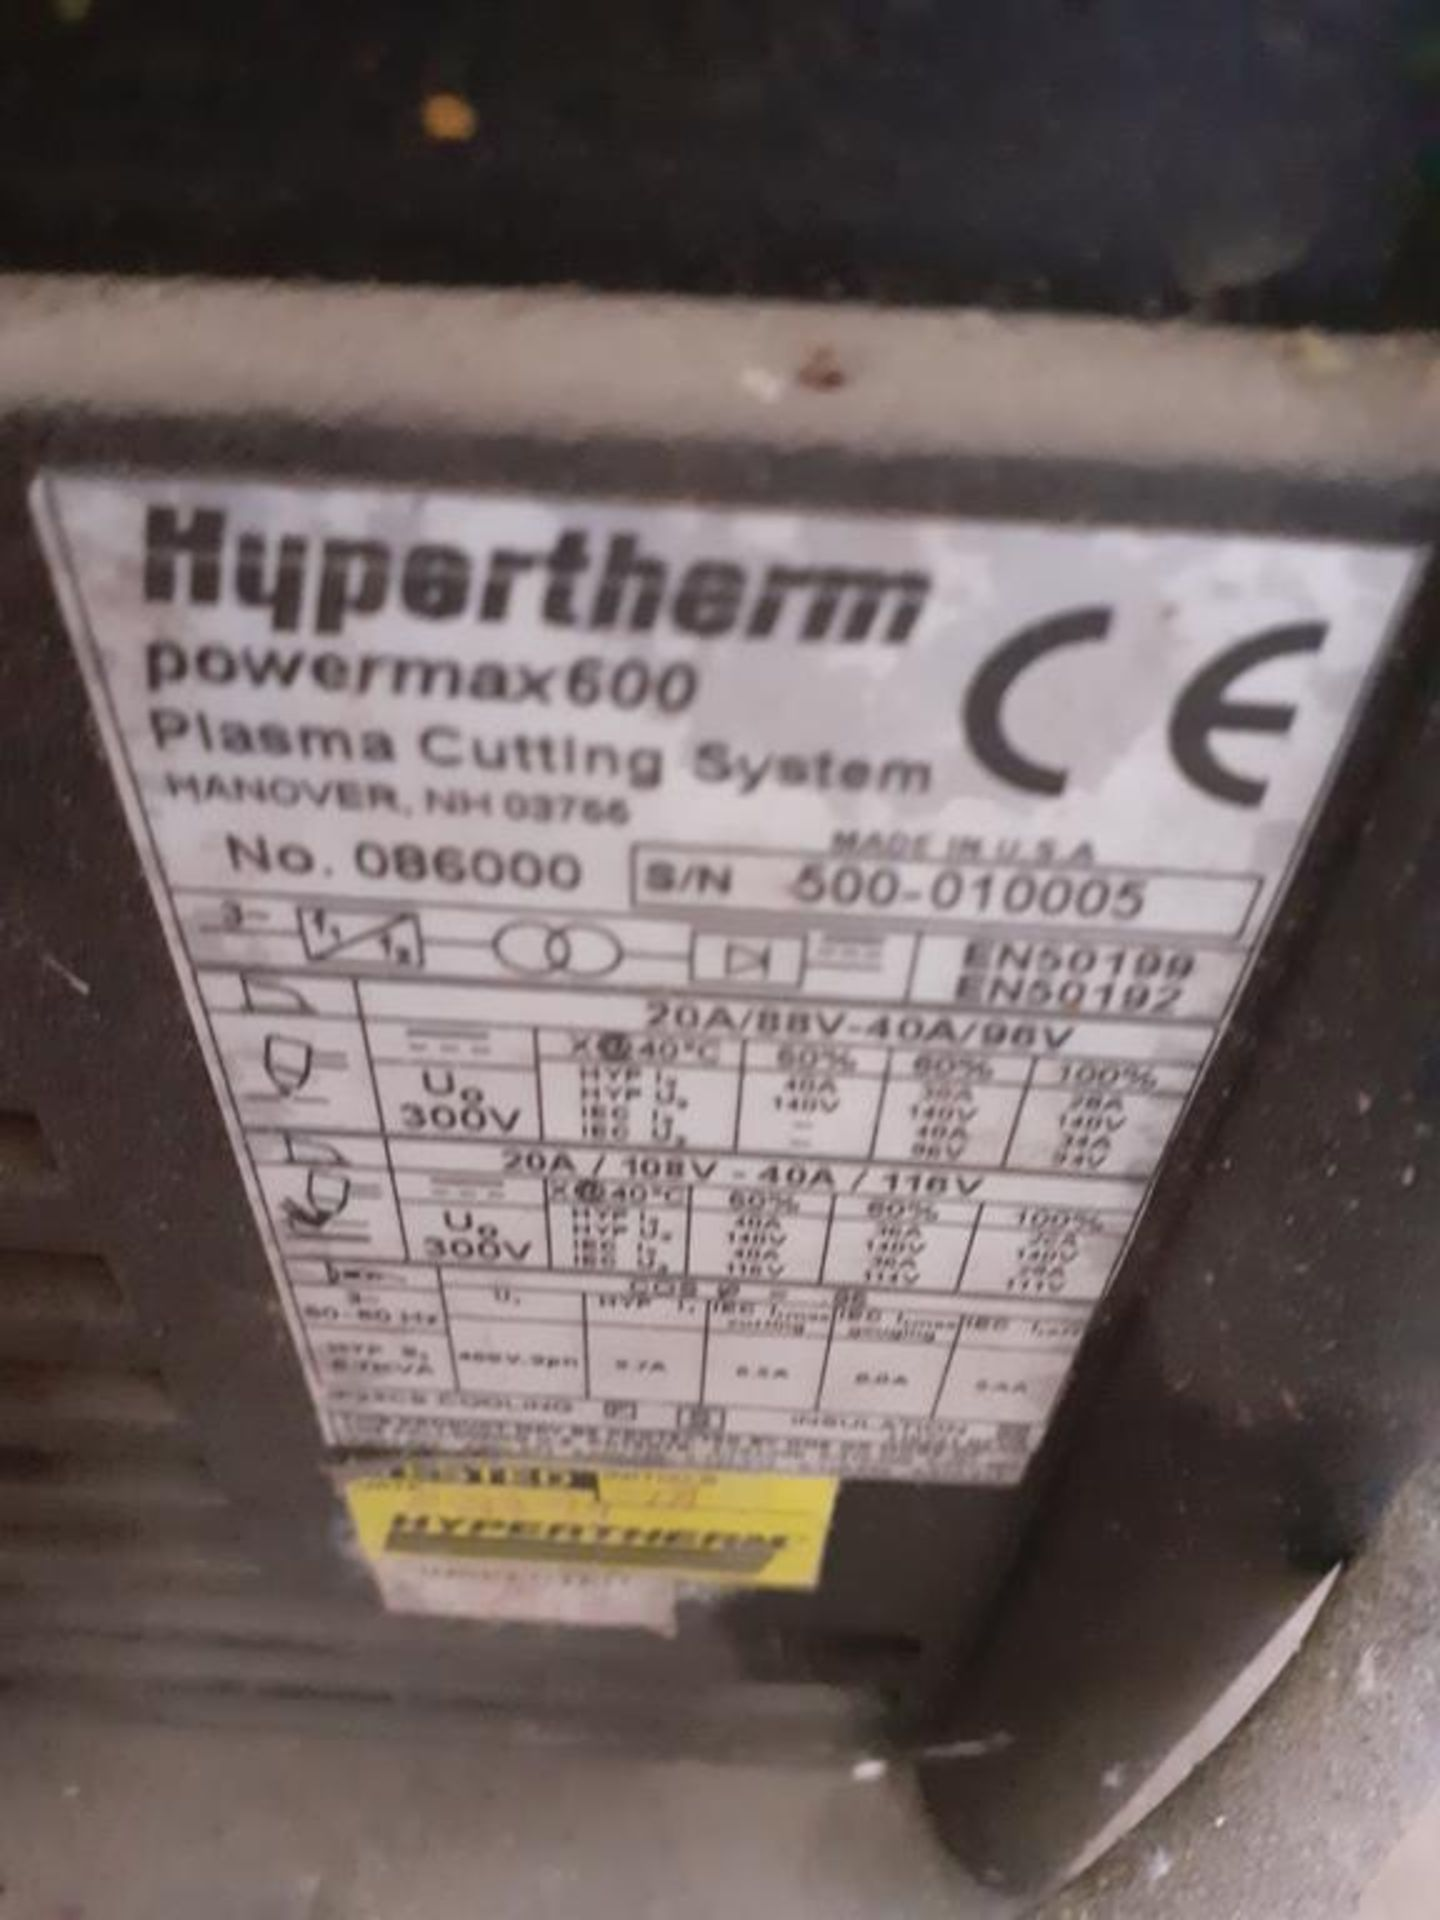 Hypertherm Powermax 600 plasma cutting system - Image 2 of 2